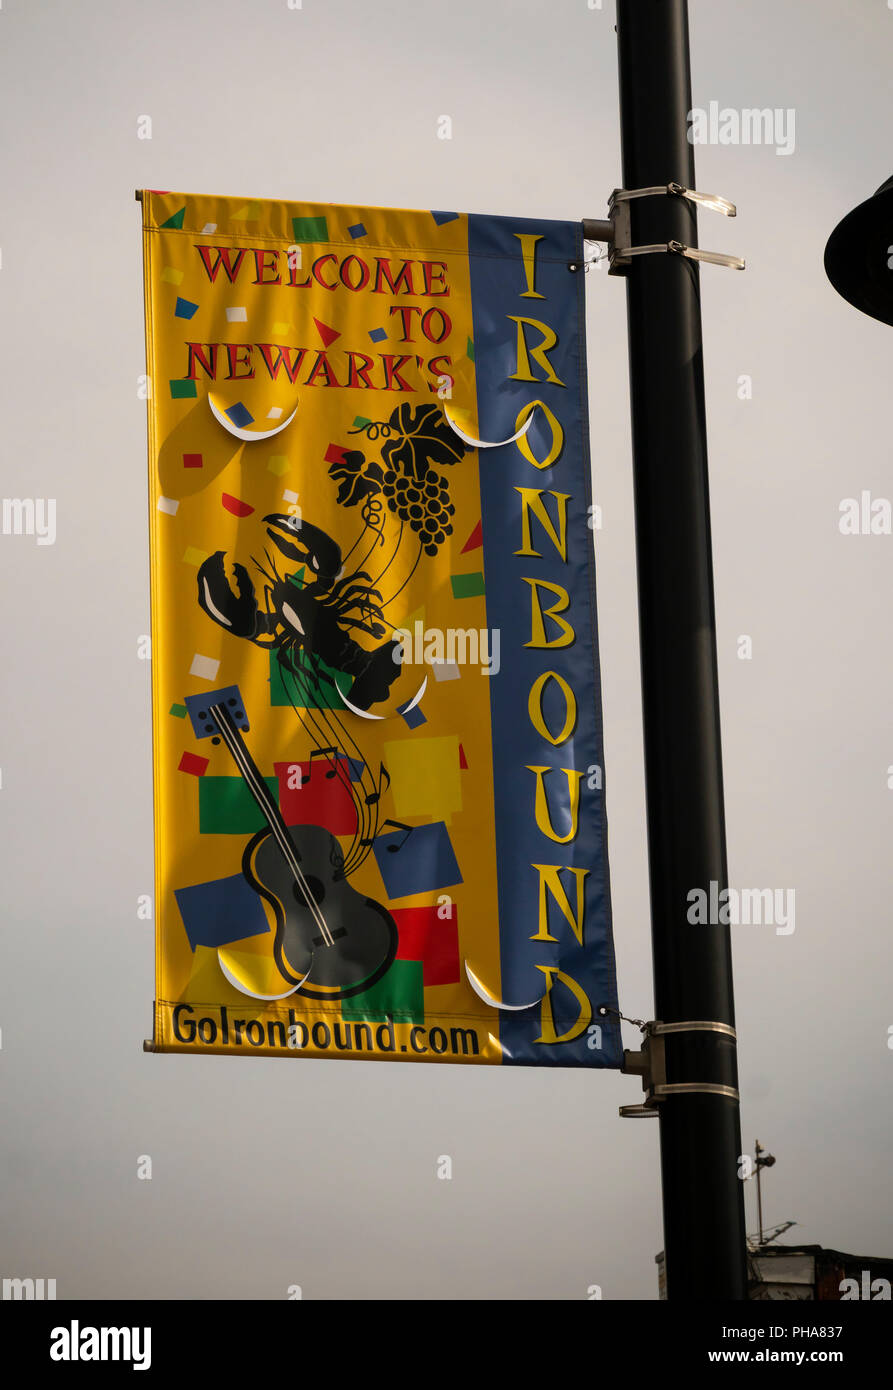 A banner in the Ironbound neighborhood in Newark, NJ on Saturday, August 25, 2018. The neighborhood is a Portuguese enclave and a major tourist attraction for the city. (© Richard B. Levine) - Stock Image